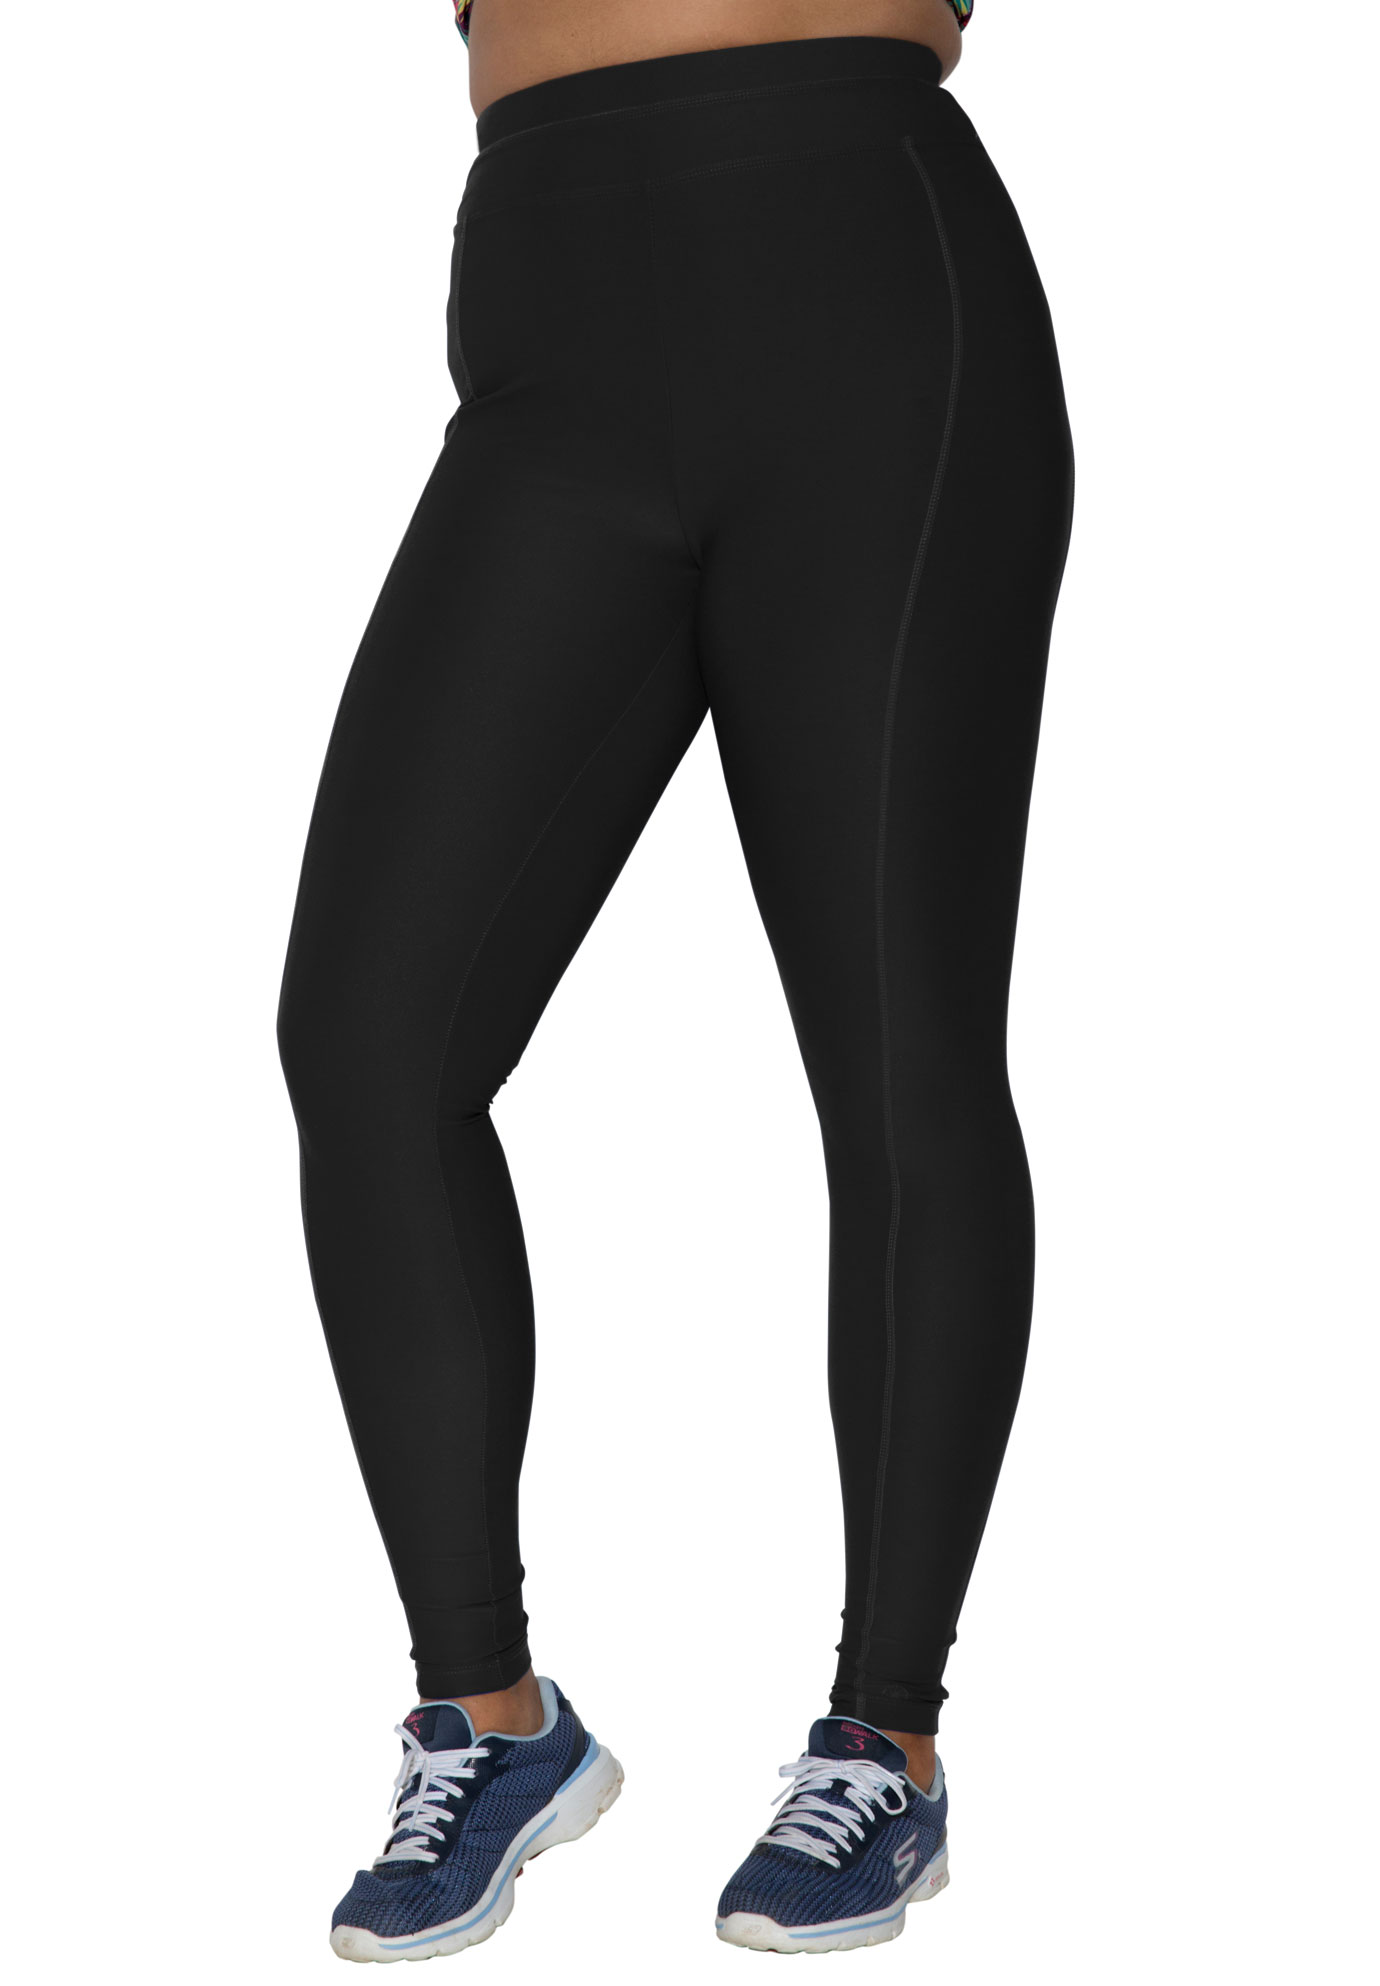 f461eda07a1 Leggings by FullBeauty SPORT®